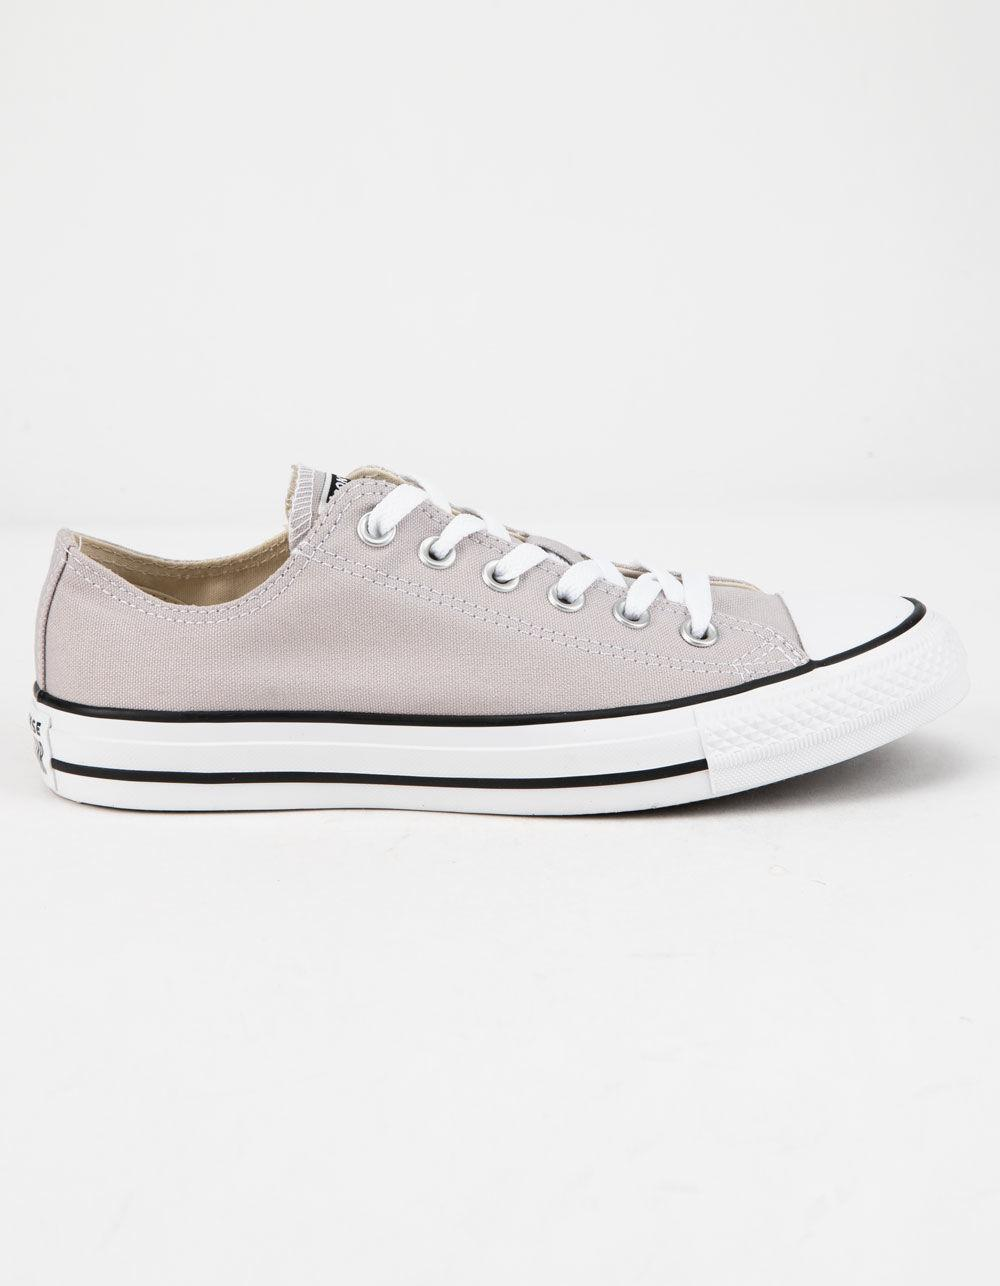 9f3207552d46df Converse. White Chuck Taylor All Star Violet Ash Low Top Womens Shoes